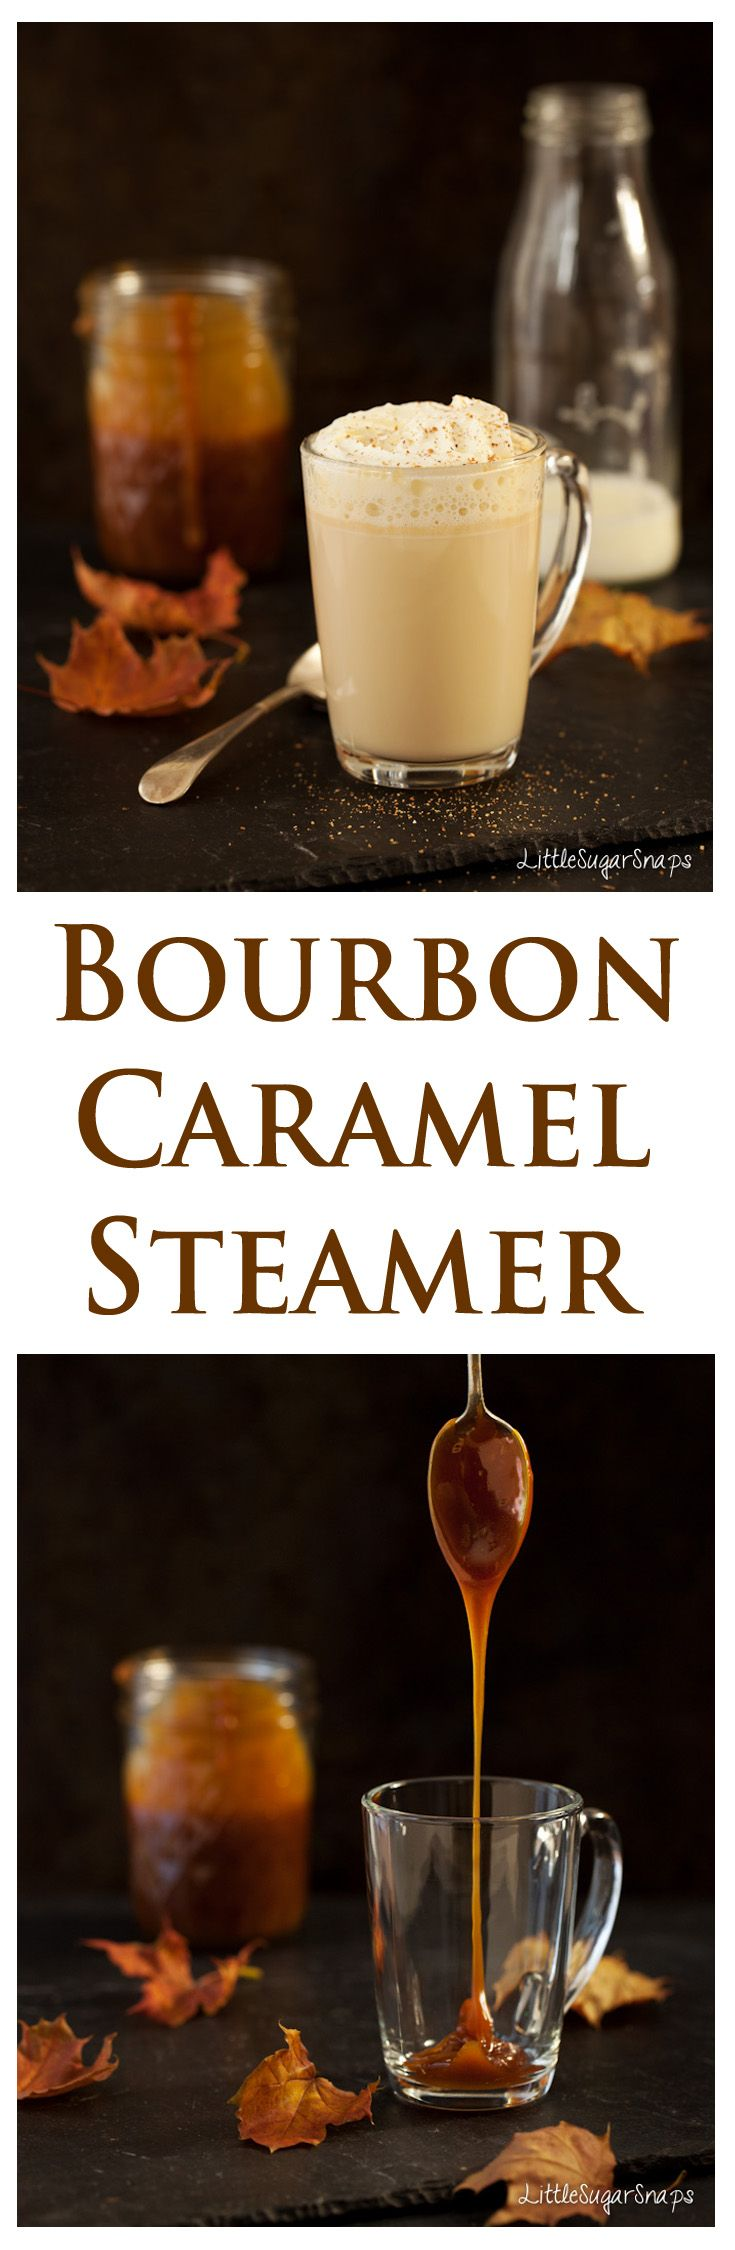 Feel warm and cosy with this delicious blend of milk, caramel and just a hint of Bourbon. The Bourbon Caramel Steamer is guaranteed to get you through the autumn and winter in style.